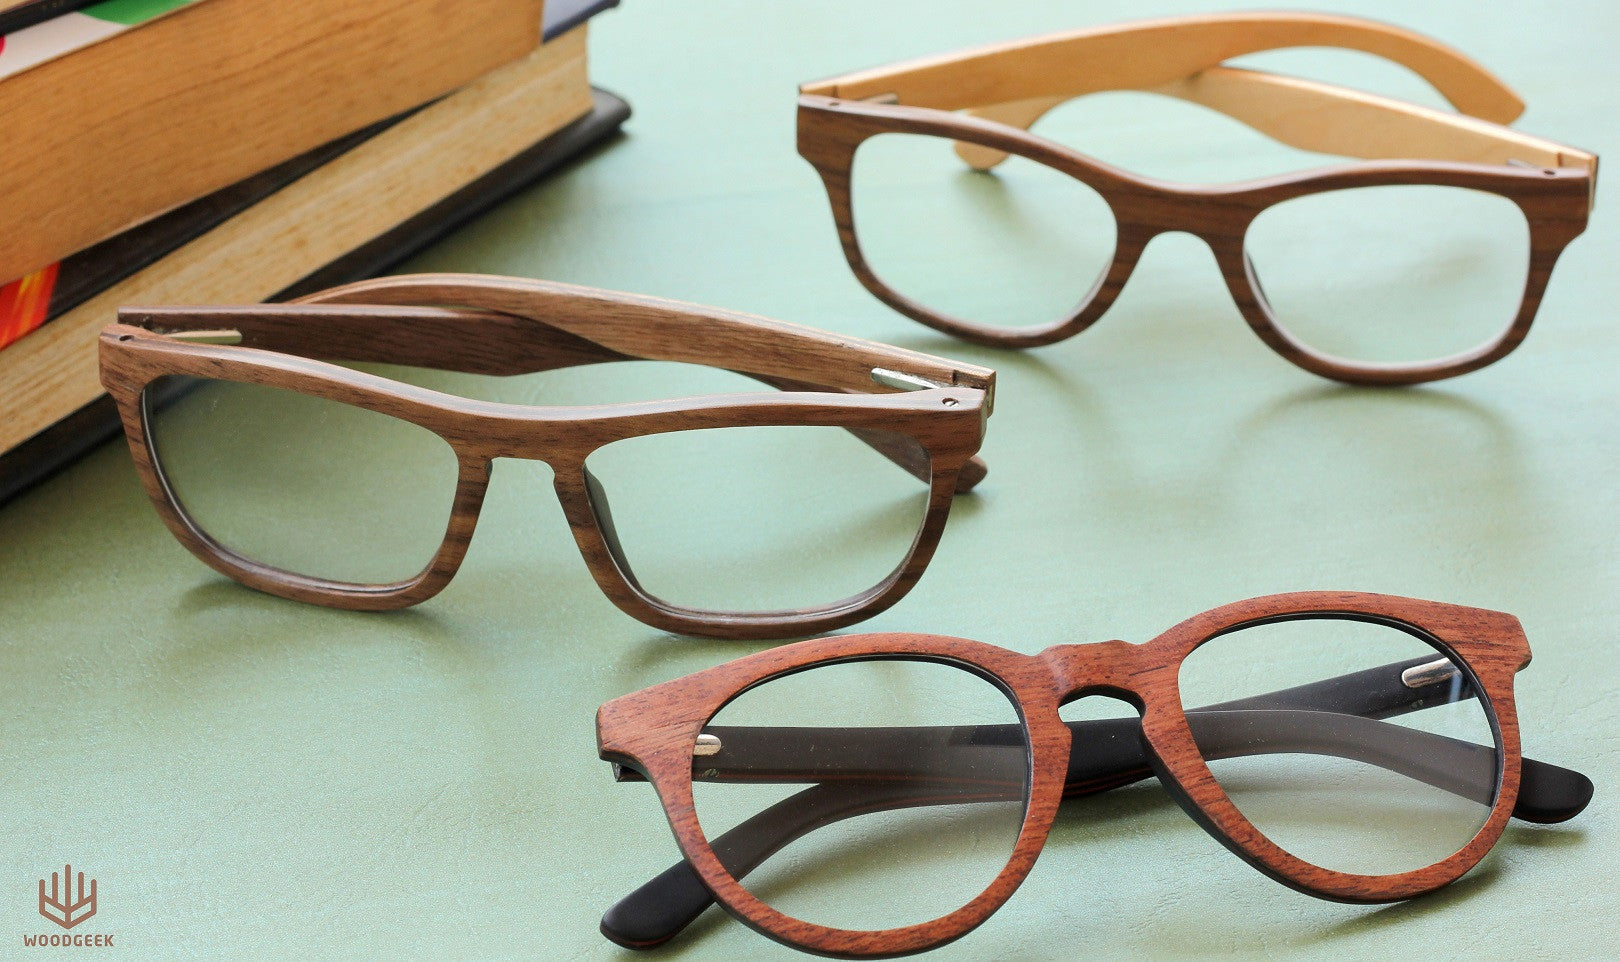 Get These Cool Wooden Eyeglasses Showcased At Lakme